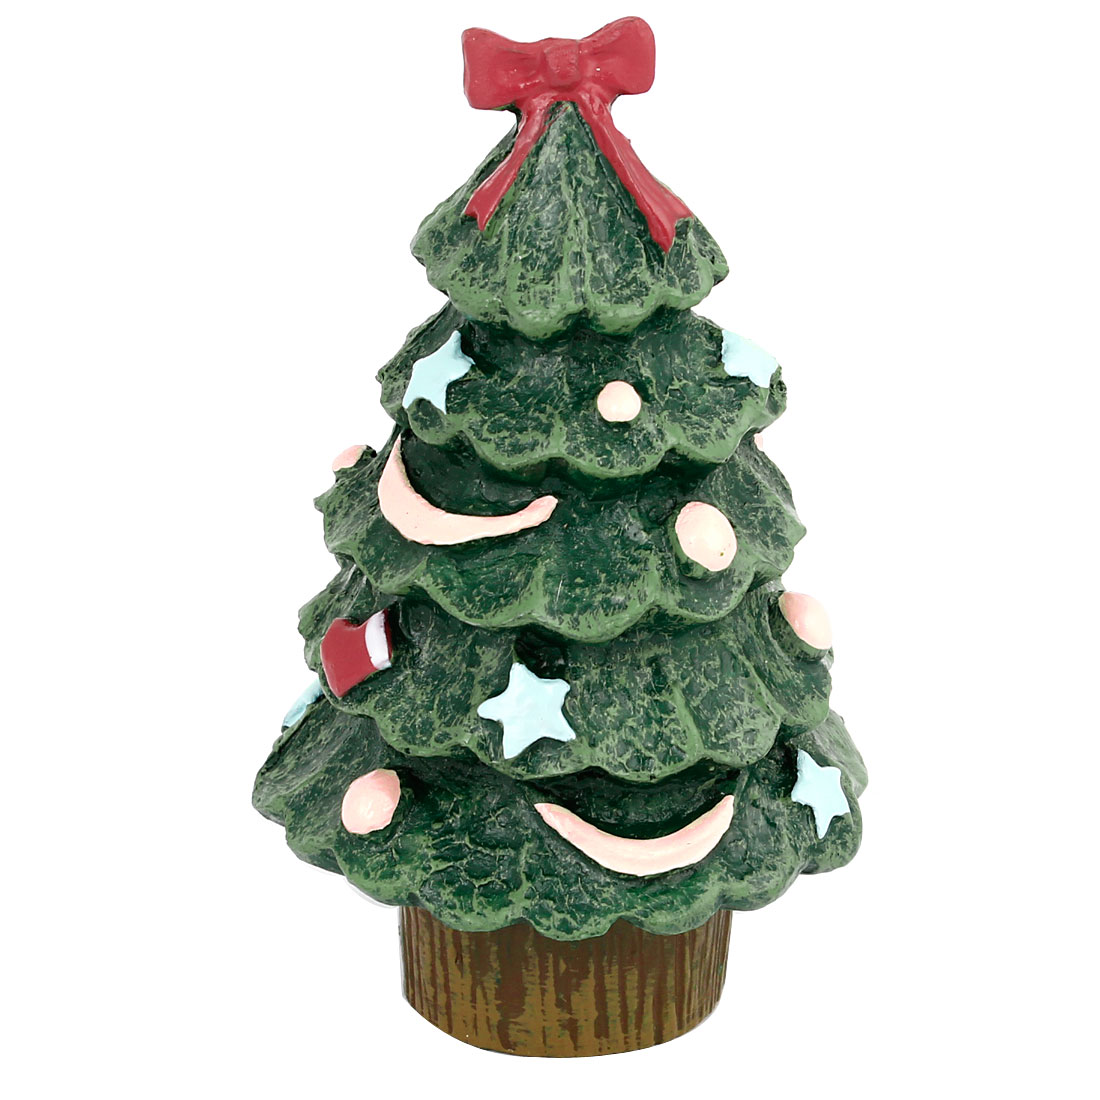 Festival Decor Simulated Christmas Tree Ornament Craft Green